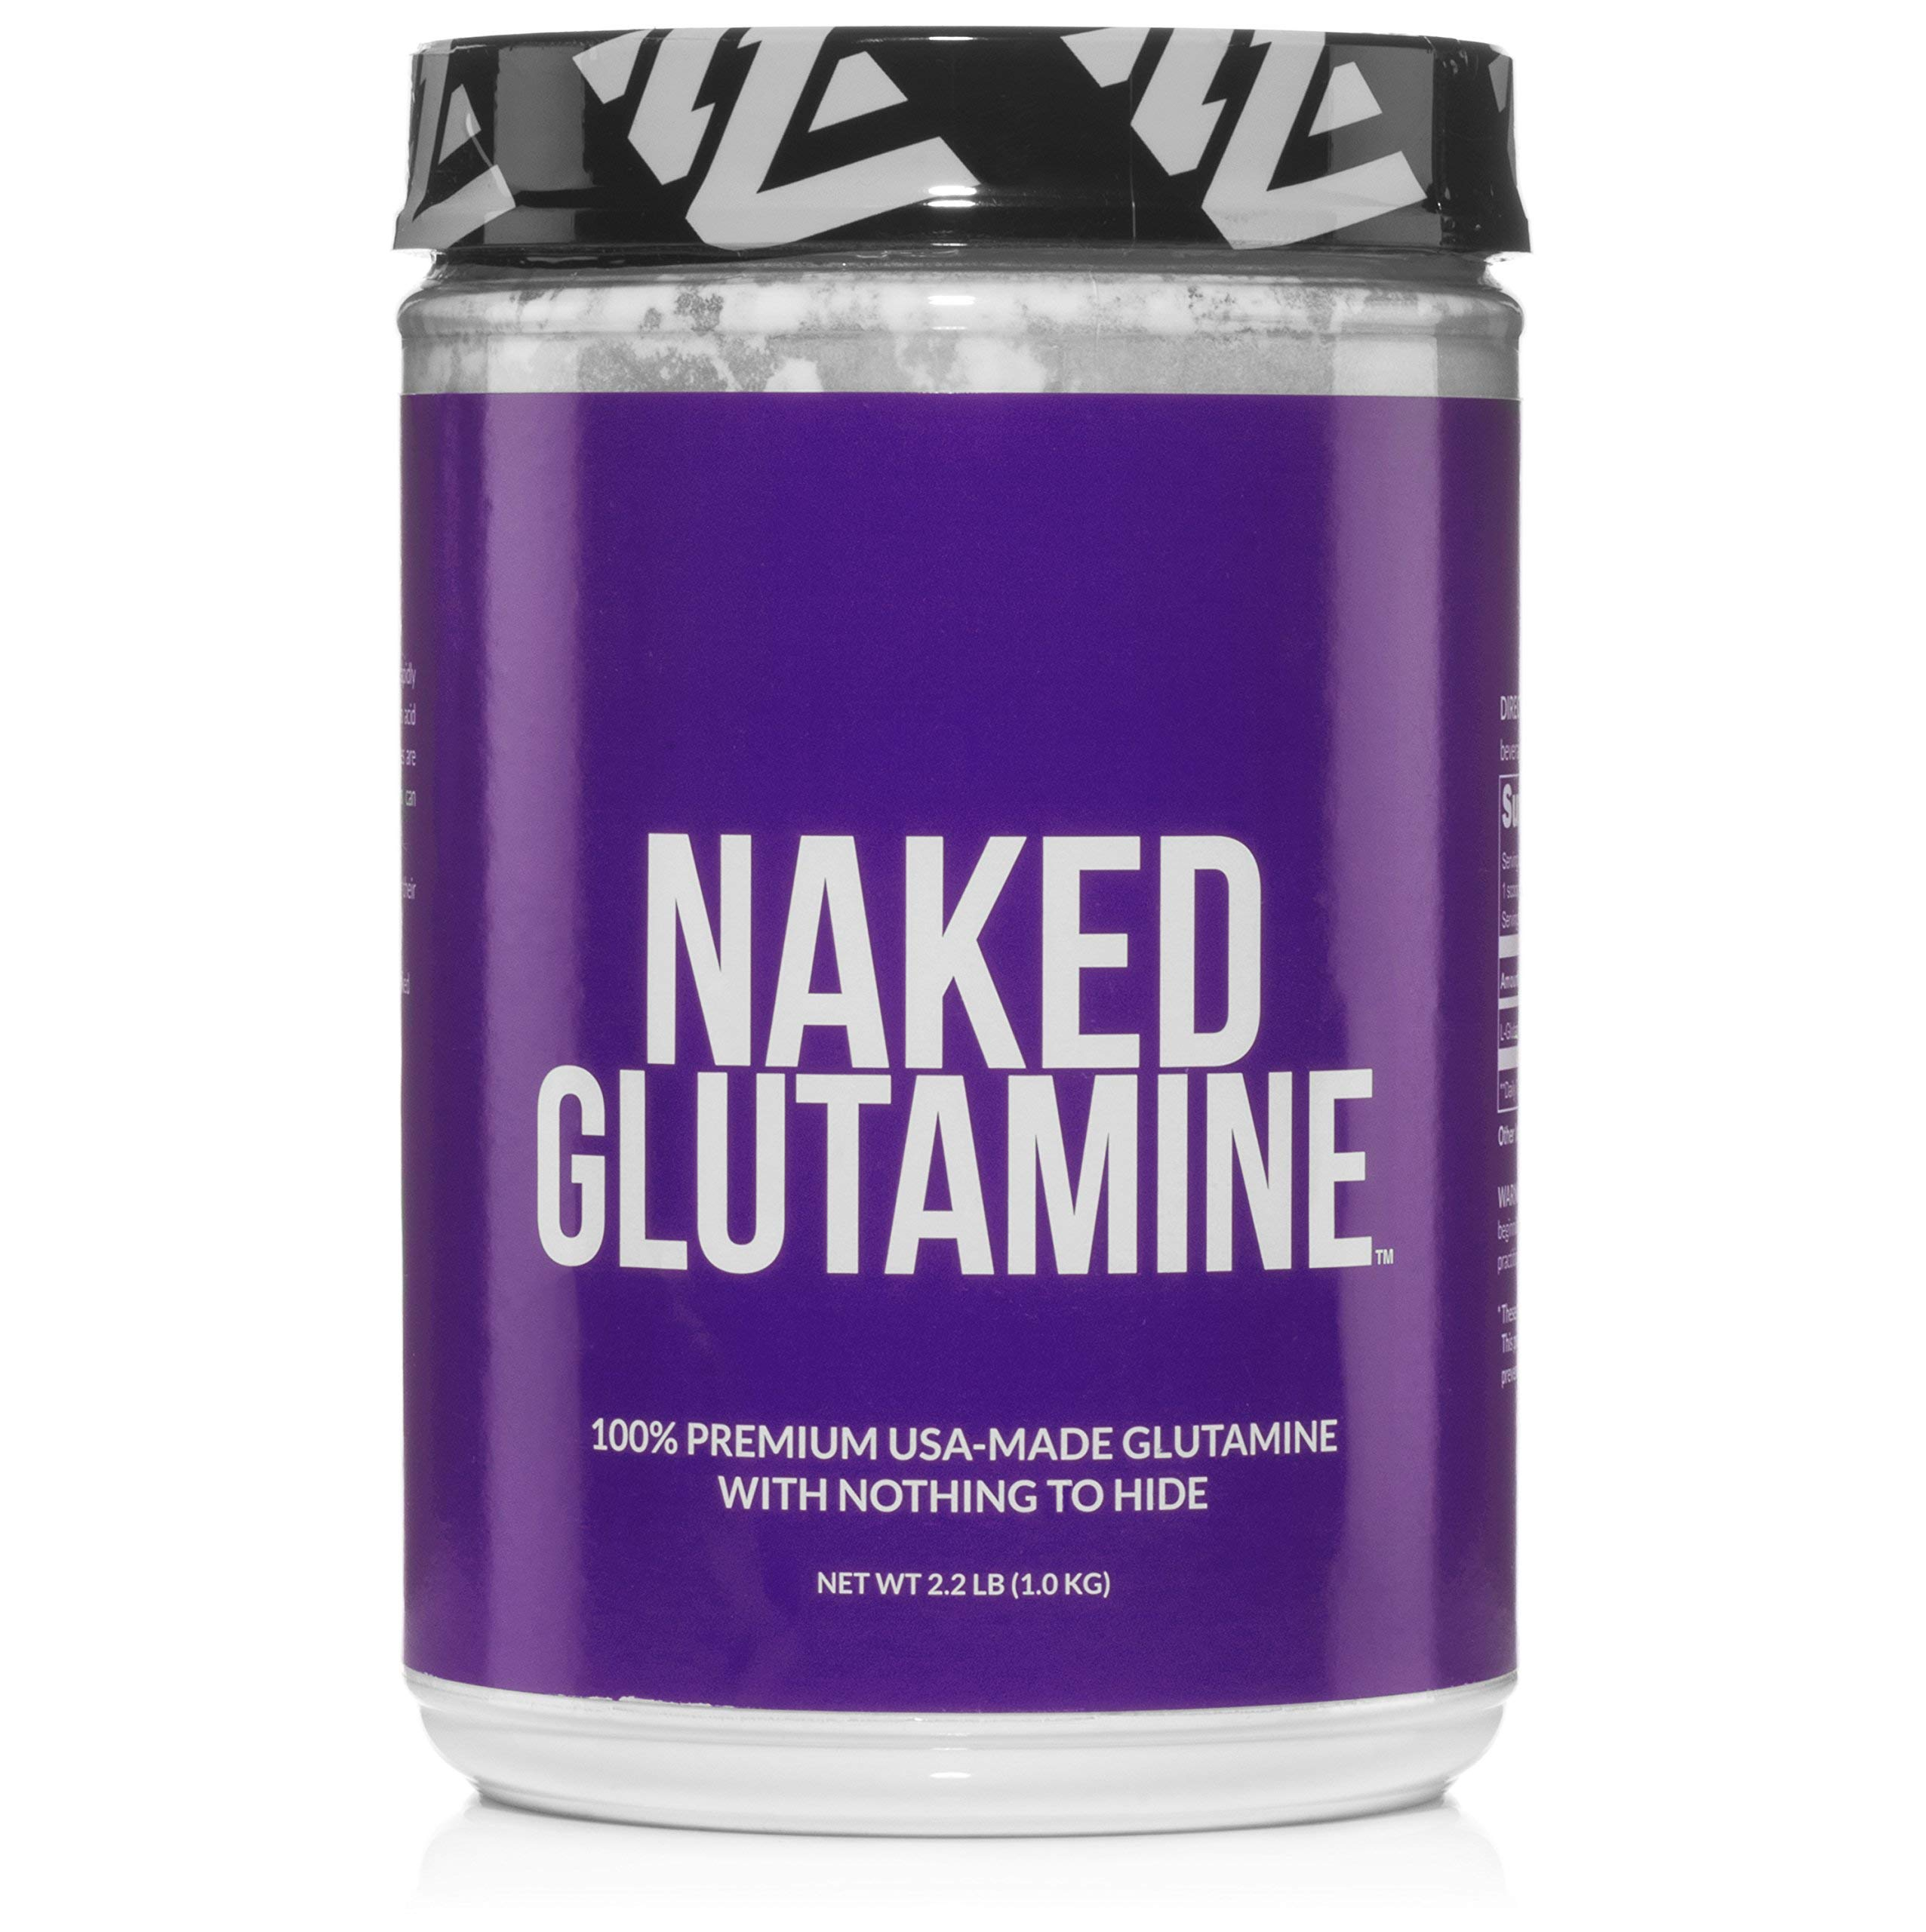 Pure L-Glutamine Made in The USA - 200 Servings - 1,000g, 2.2lb Bulk, Vegan, Non-GMO, Gluten and Soy Free. Minimize Muscle Breakdown & Improve Protein Synthesis. Nothing Artificial by NAKED nutrition